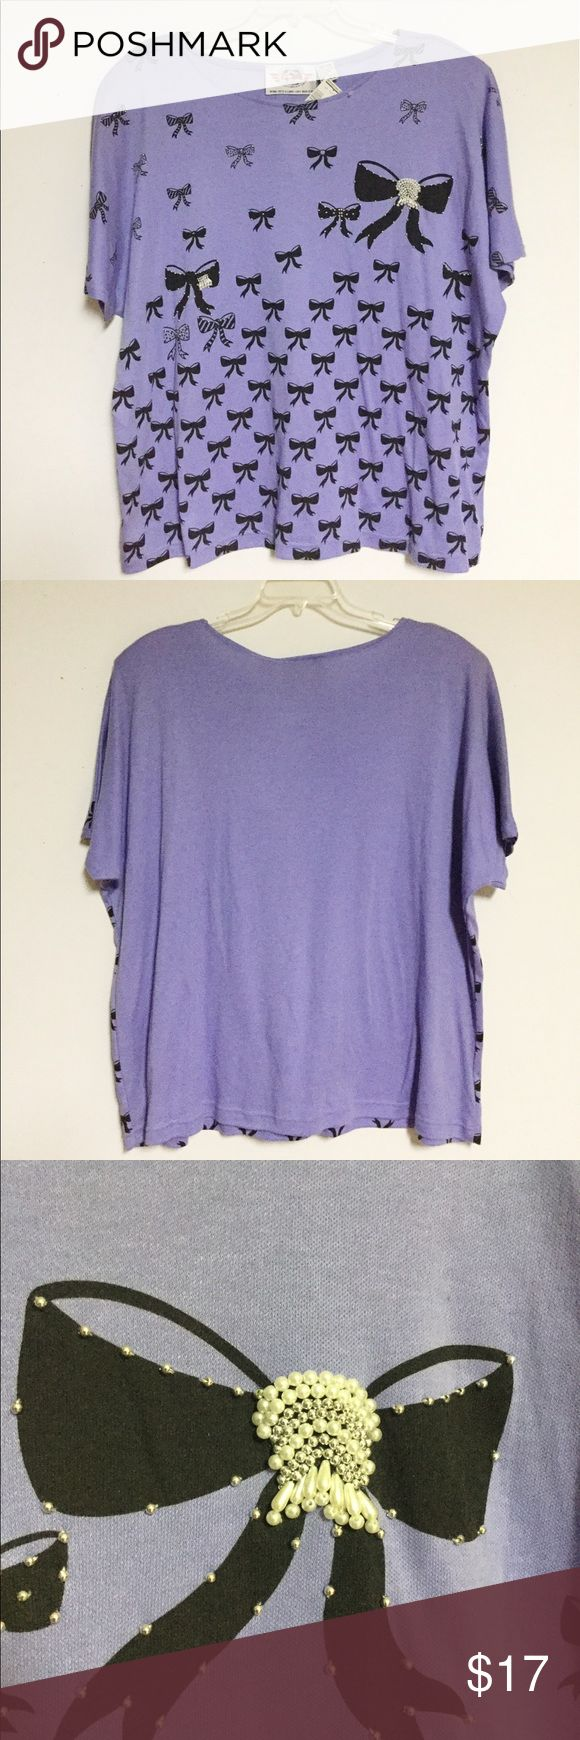 "NWT 24W Vintage Purple Tee w/Bows & Beads Adorable! New with tags. From International Sportswear Co.. Size 24W. Approximate measurements: 28"" long / 56"" bust. 65% polyester / 35% cotton. Hand wash. Shoulder pads. Please note I am pet friendly & I share walls with a smoking household -- thanks!! International Sportswear Tops Tees - Short Sleeve"